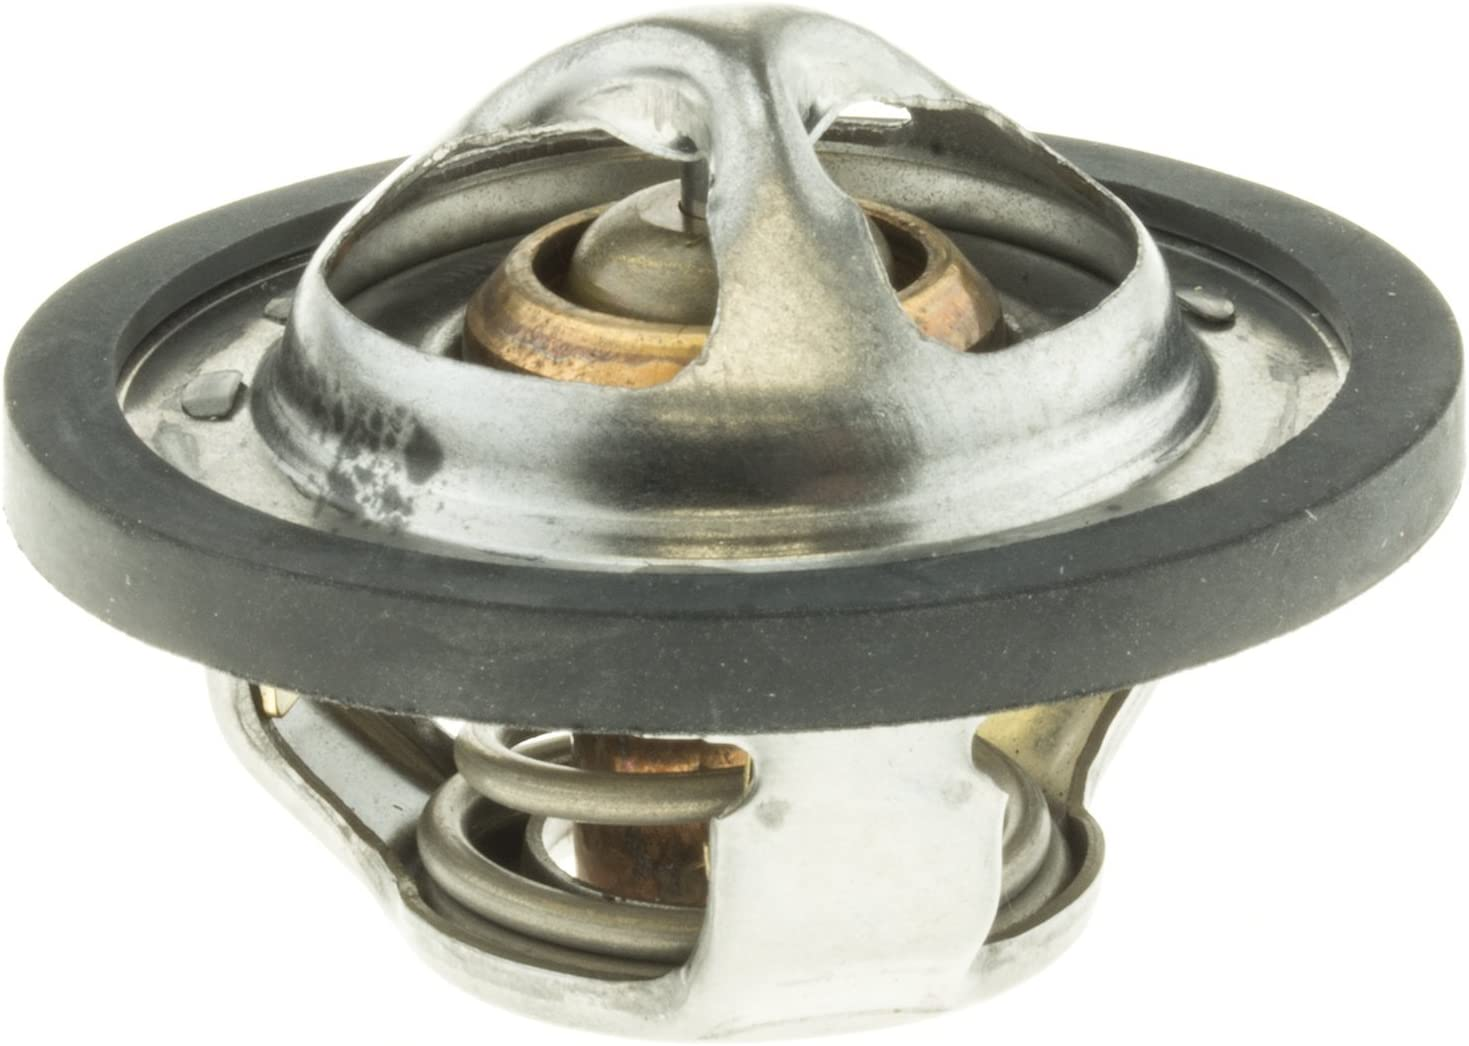 Motorad 7457-205 205 °F Fail-Safe Thermostat